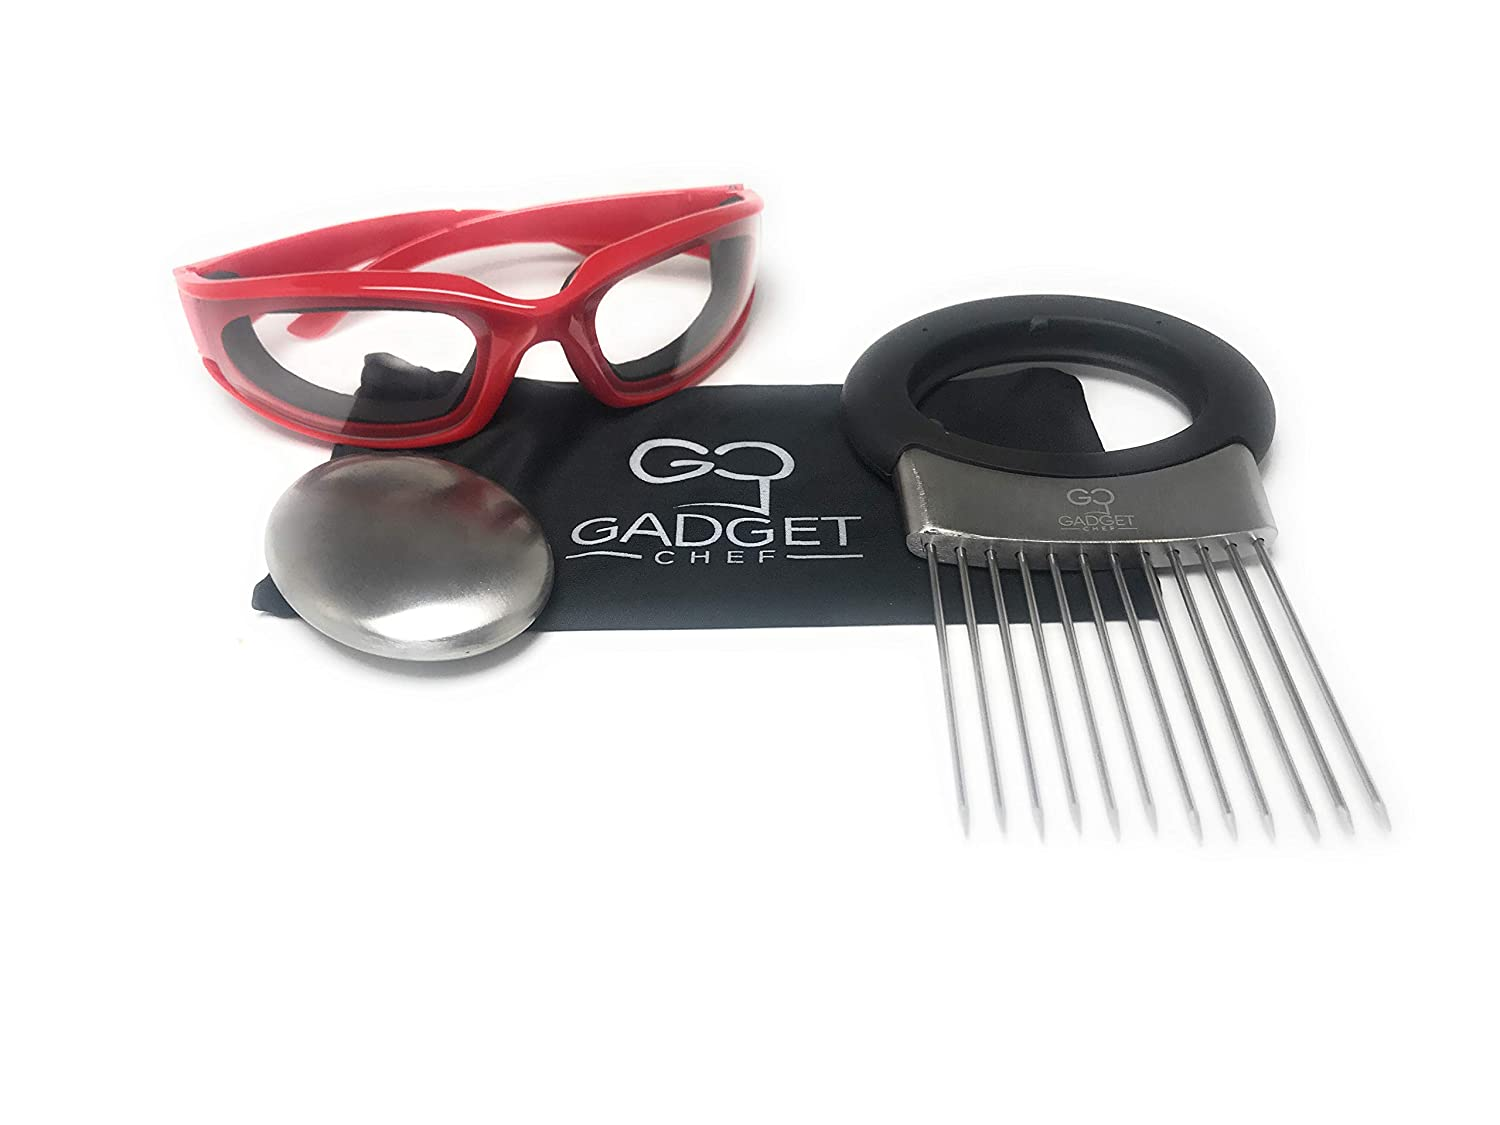 Onion Goggles Onion Holder Set – Includes Tear Free Anti Fog Onion Glasses with Free Micro Fiber Case, All in one Stainless Steel Onion Holder with Odor Remover. Must Have Kitchen Gadget Set (Black) Gadget Chef